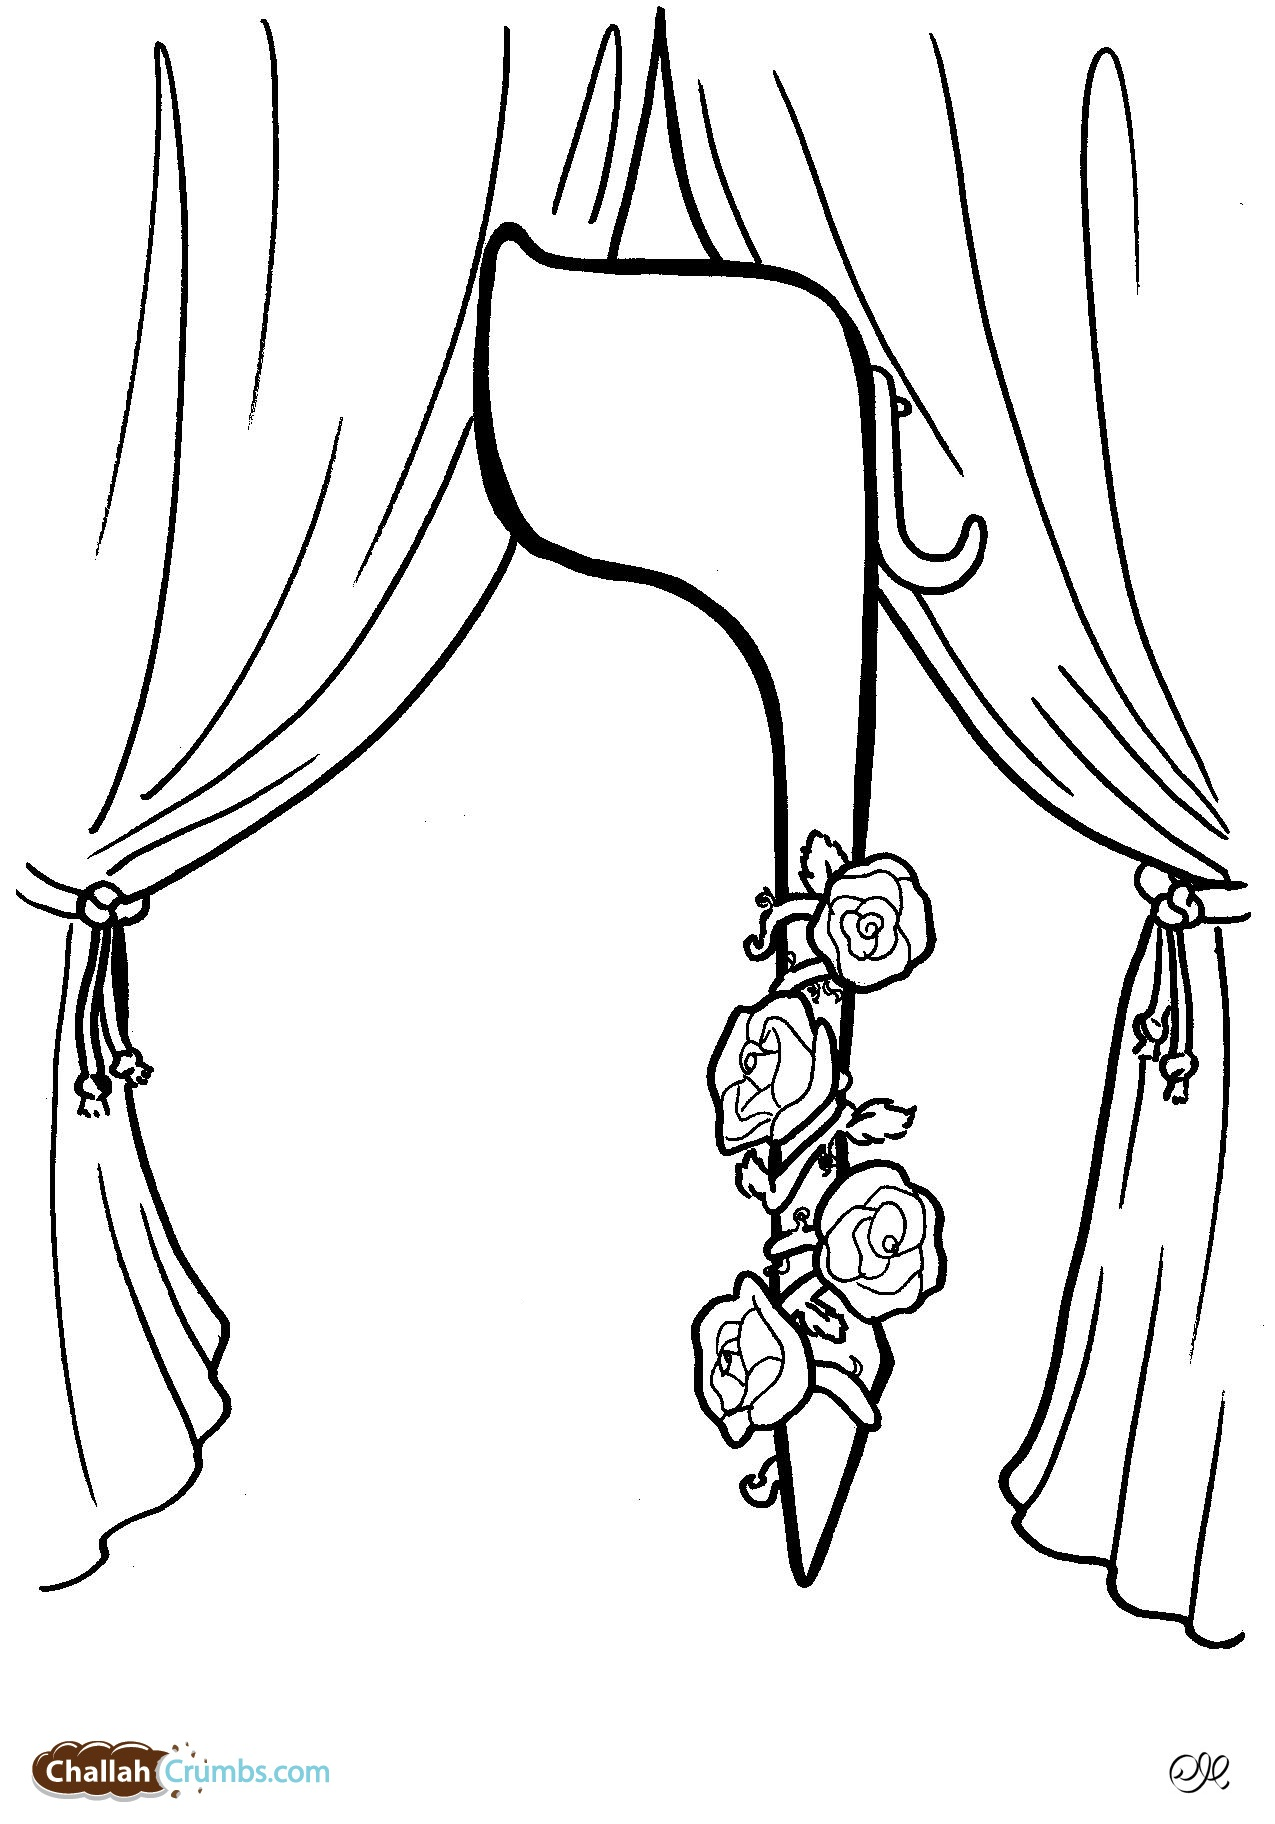 Aleph Bet Coloring Pages Http Www Challahcrumbs Com Alef Bet Coloring Pages